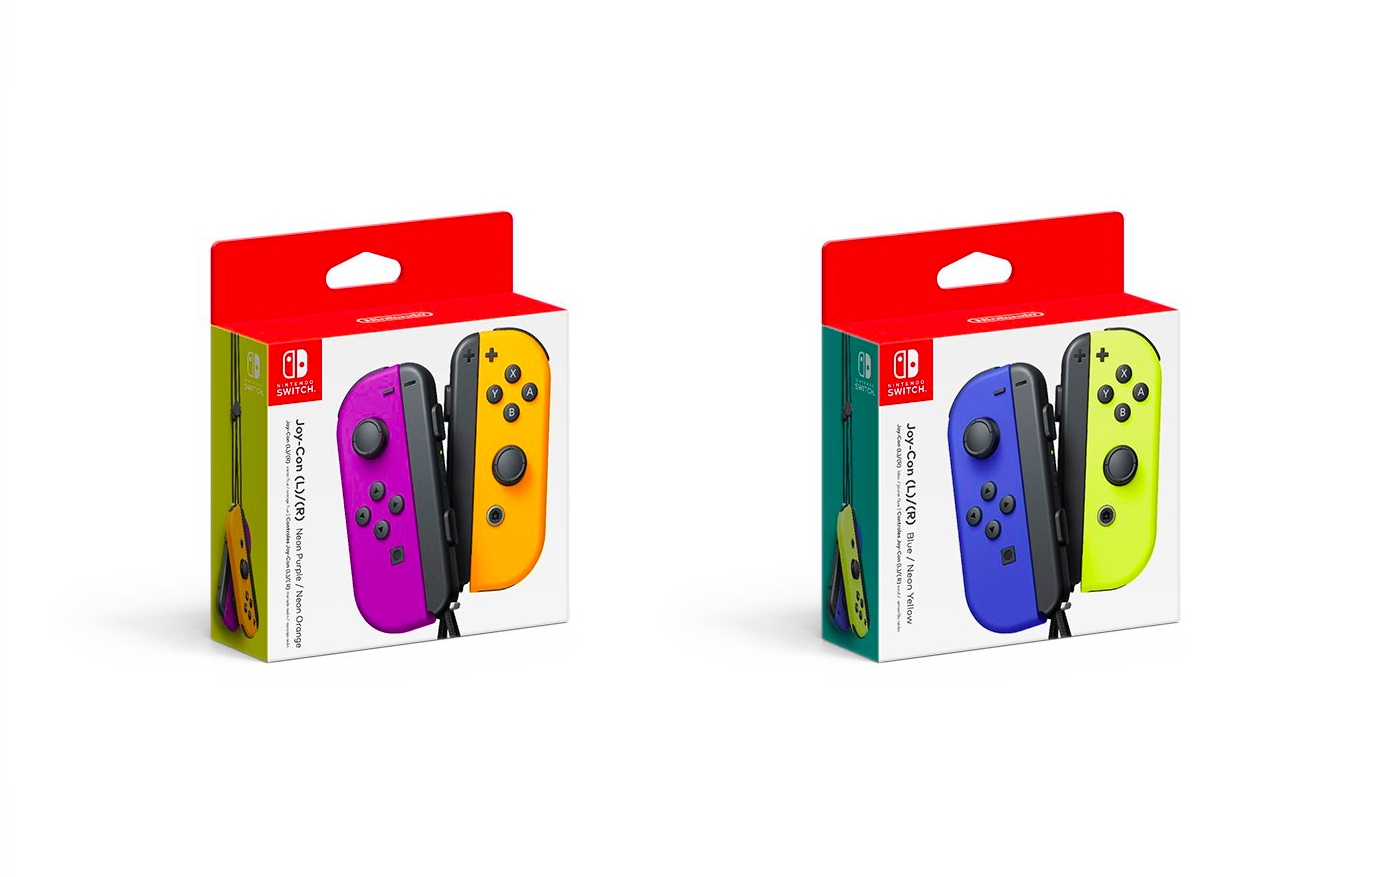 Packaging artwork for the new blue/neon yellow and neon purple/neon orange Joy-Con controllers